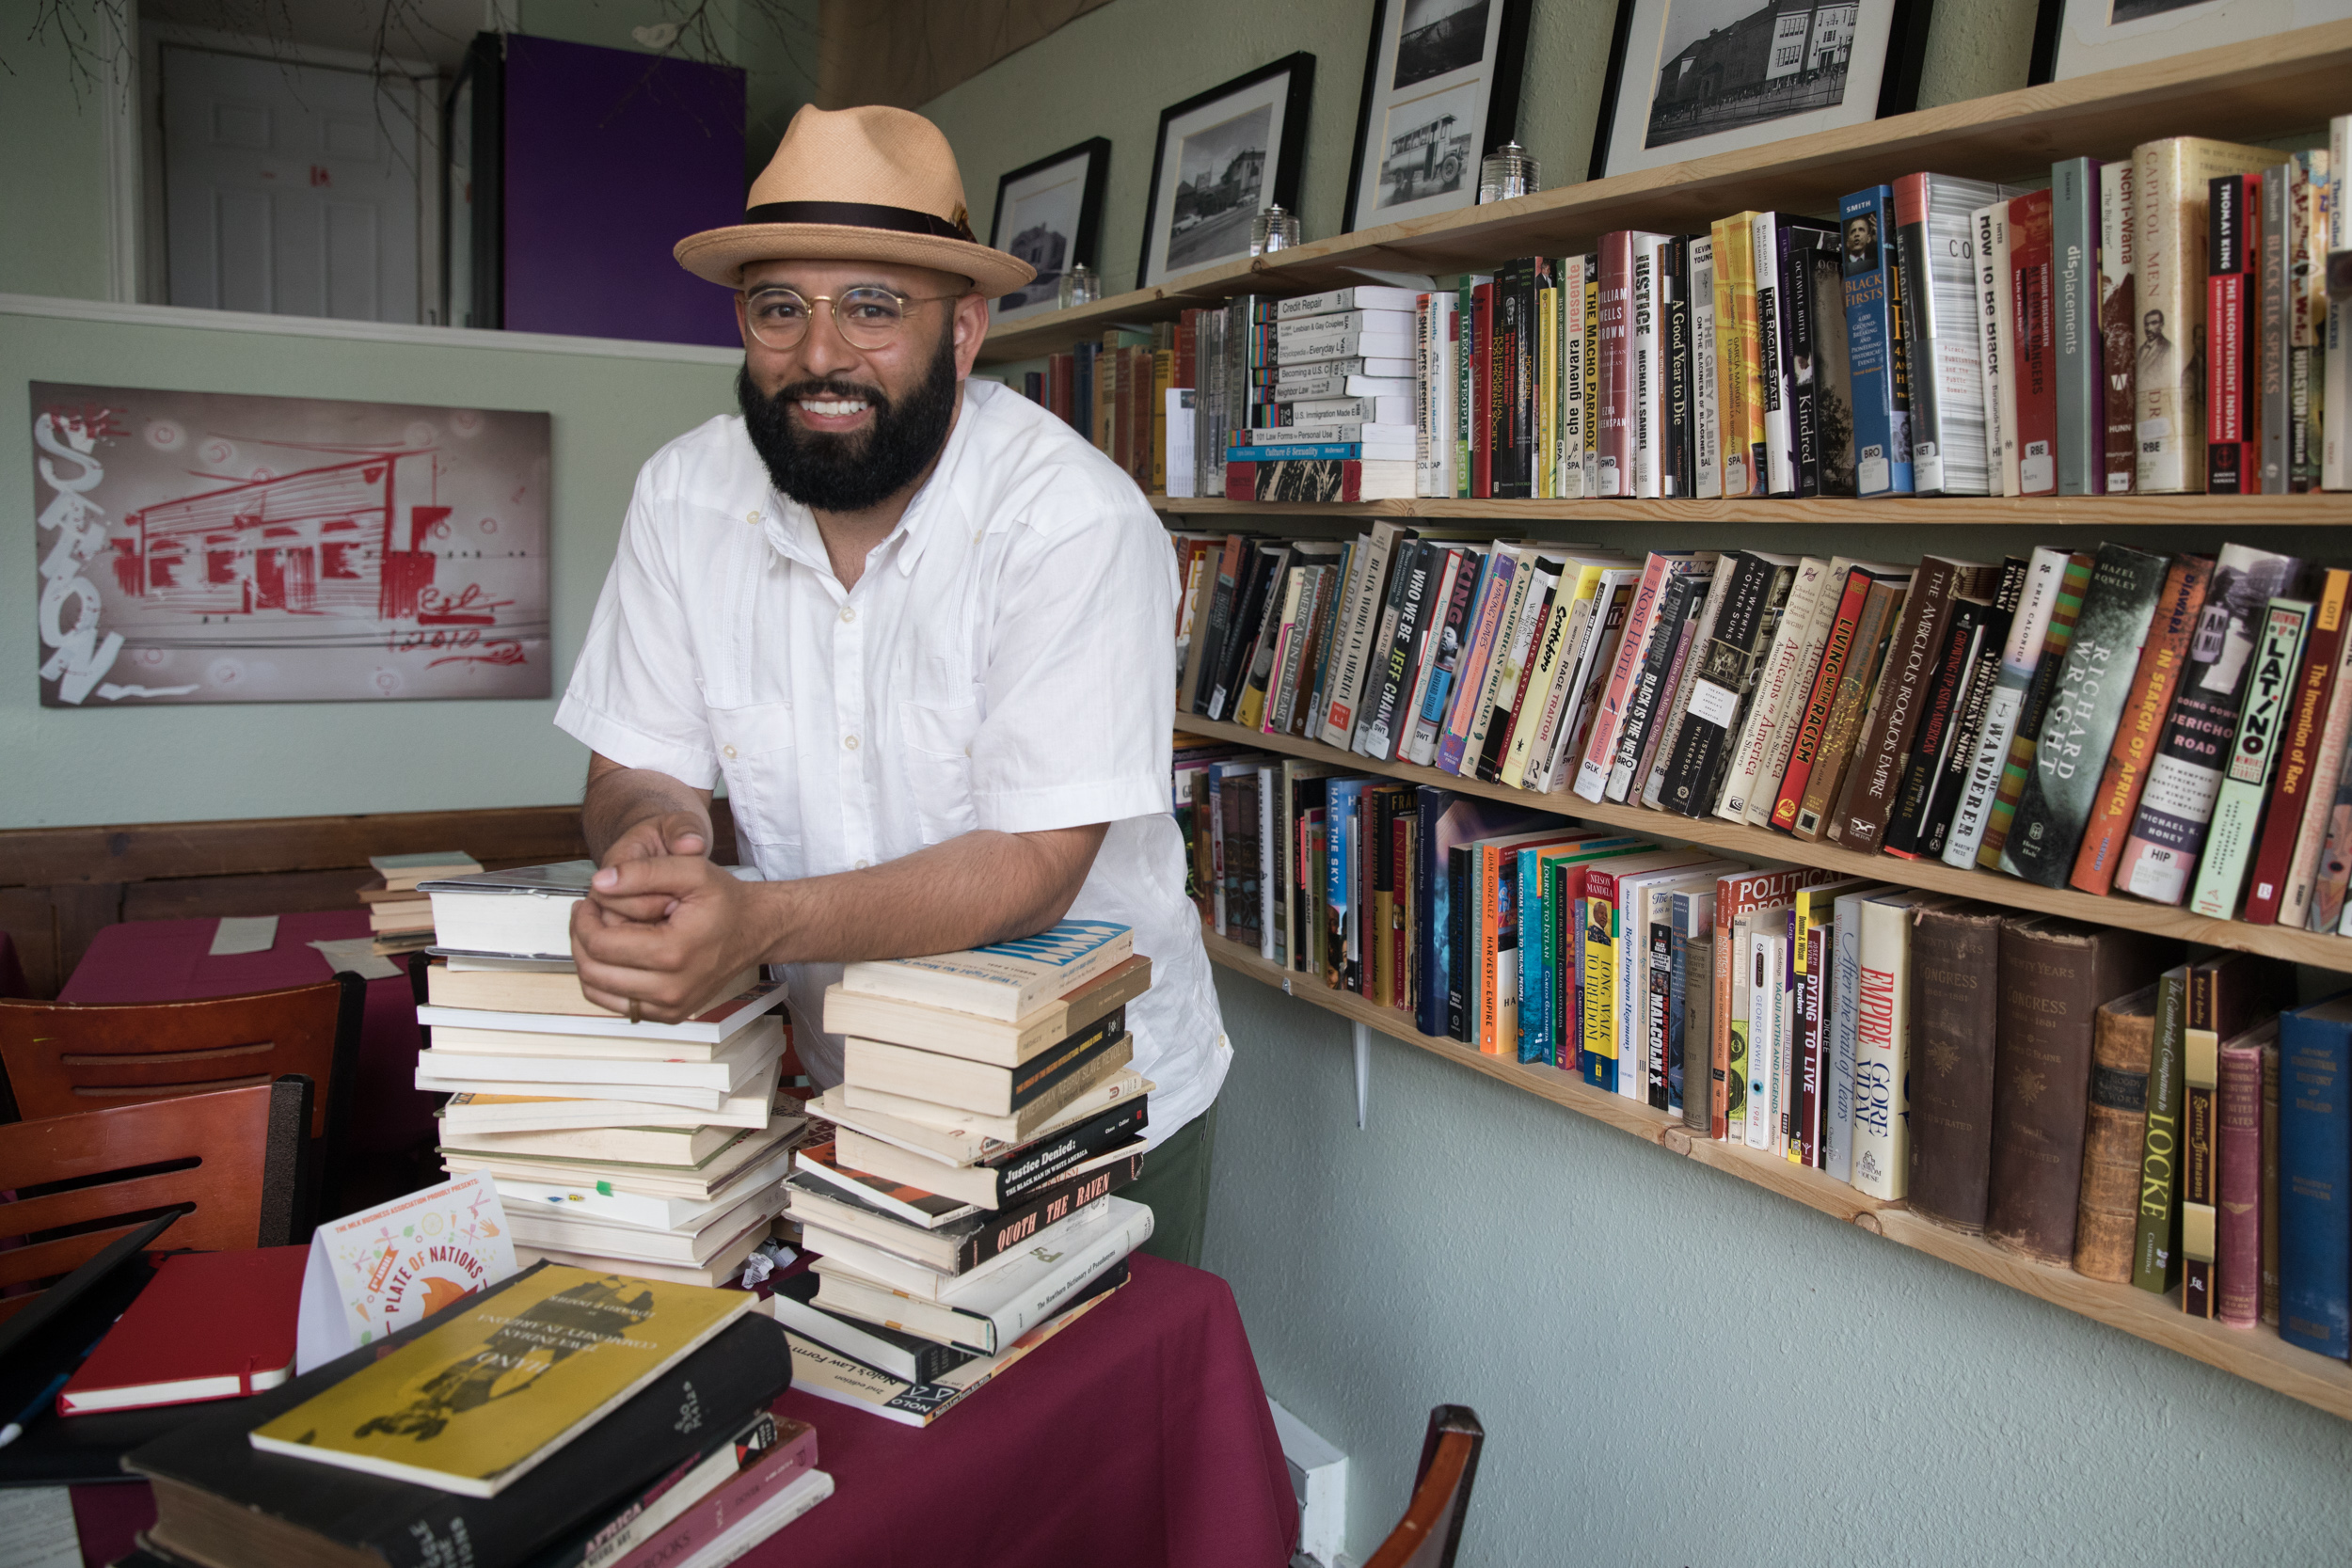 Estelitas Library founder, community organizer and activist Edwin Lindo stands amid an array of books.